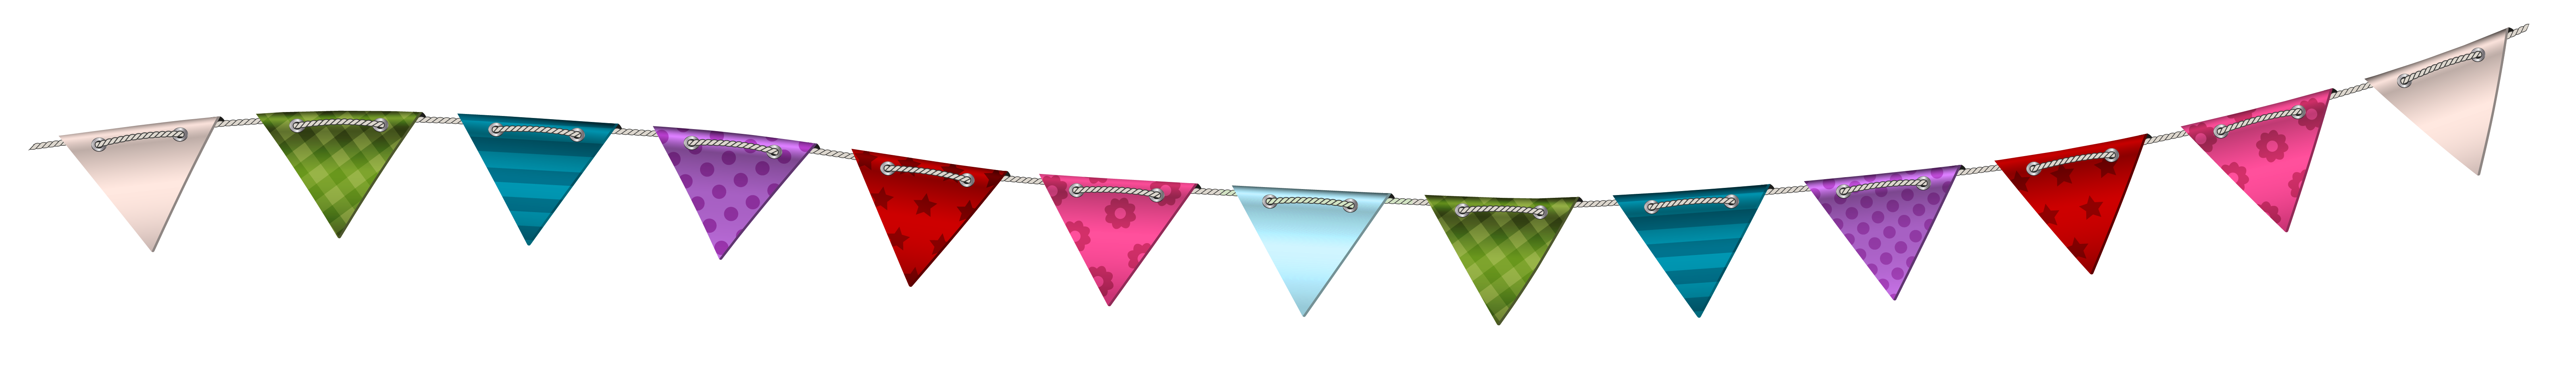 Transparent Party Streamer PNG Clip Art Image.